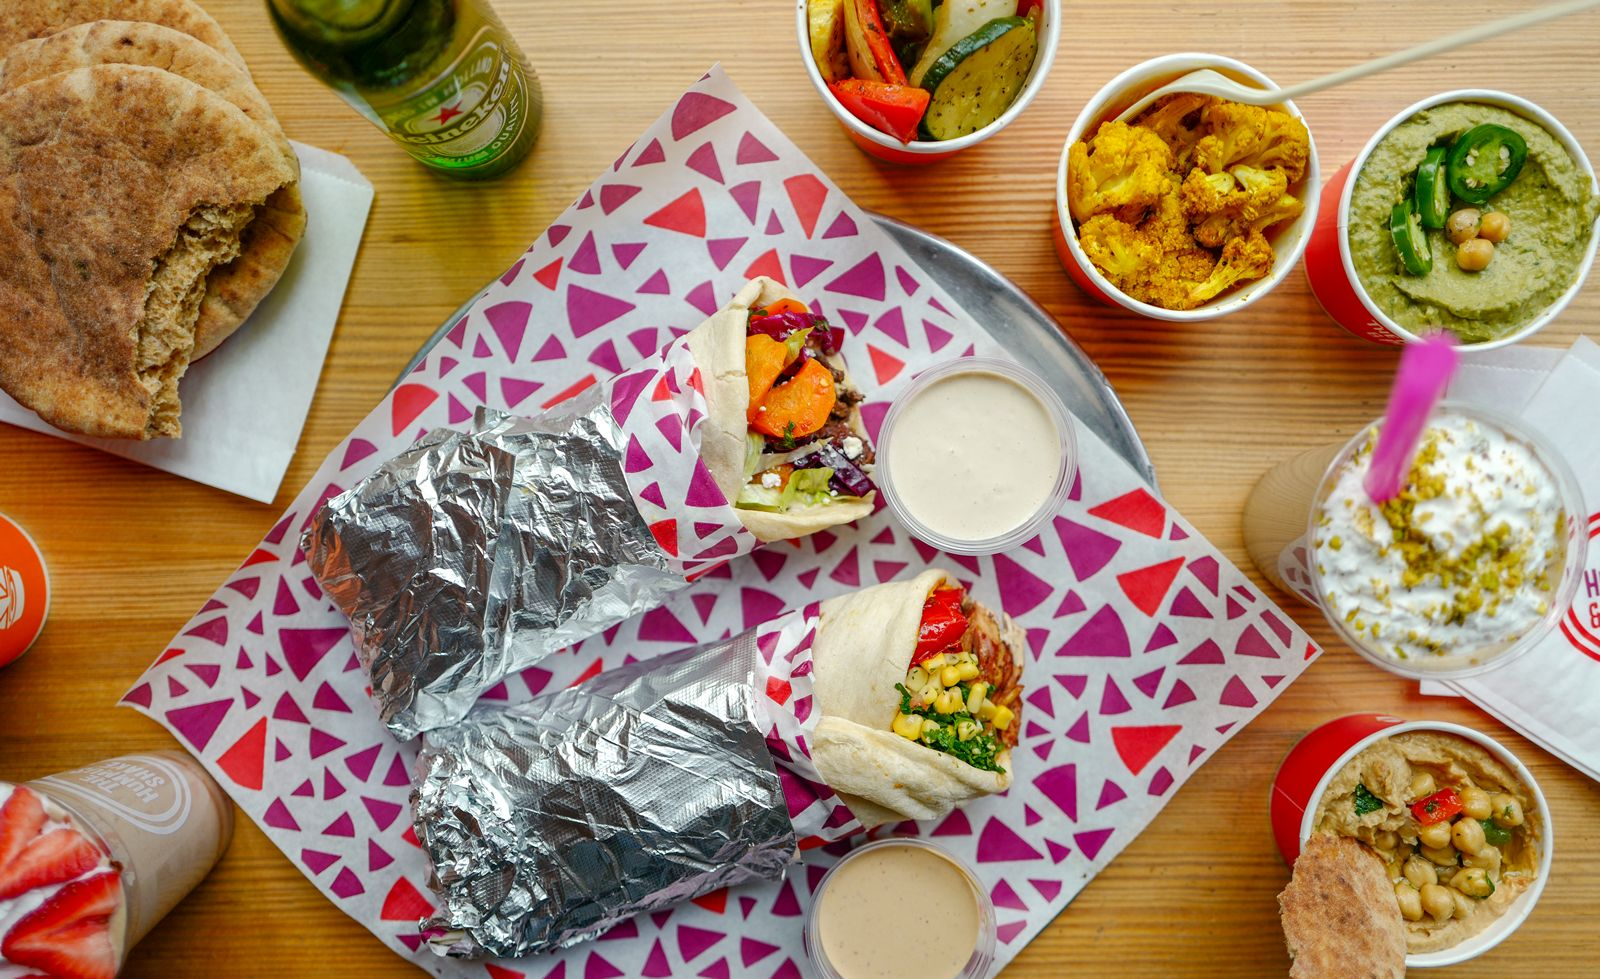 The Hummus & Pita Co. is set to bring its fresh & flavorful Mediterranean fare to Southern California with a California flagship location in North Hollywood's NOHO Shopping Center.